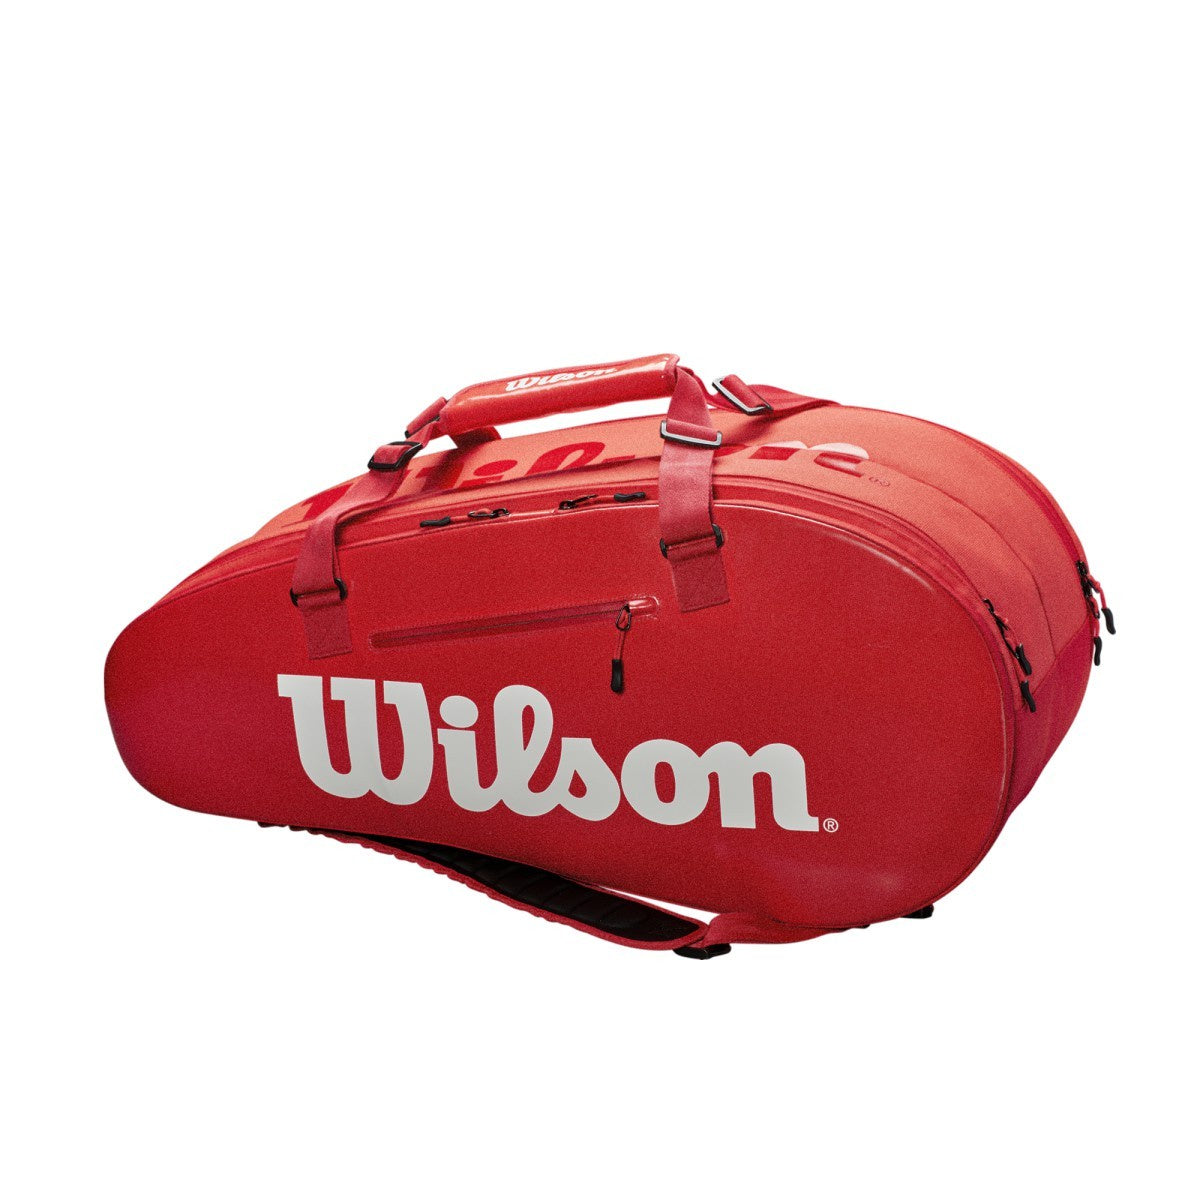 Wilson 2019 Super Tour 2 COMPARTMENT LARGE TENNIS BAG